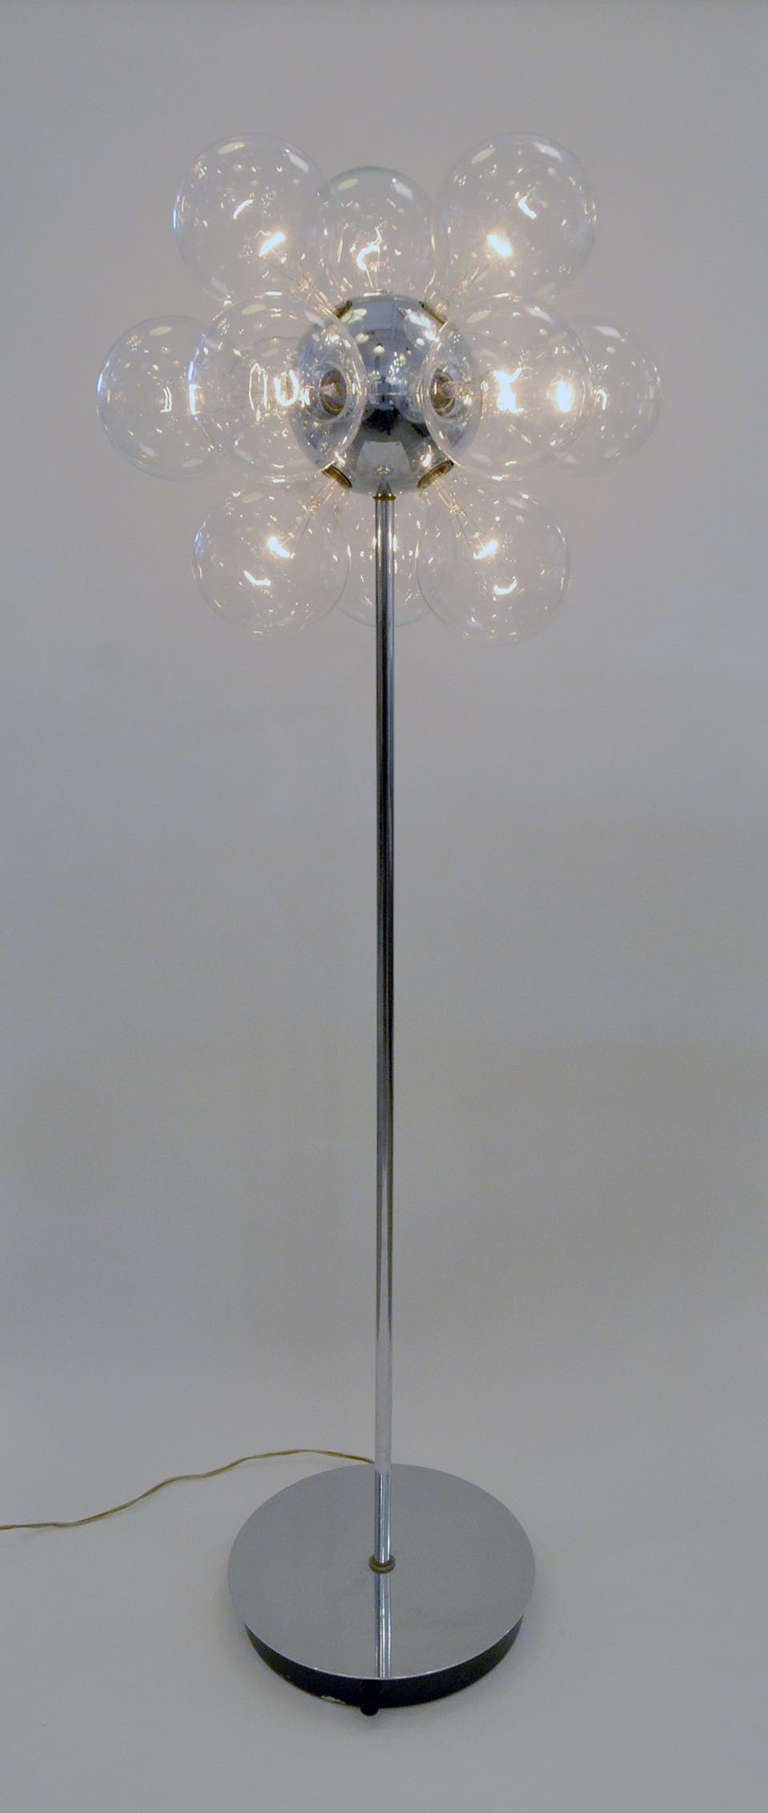 A fun and retro modern Sputnik floor lamp. The lamp as multiple sockets that work best with large vanity bulbs for added effect and fullness. There is a dimmer for adjustable mood lighting.